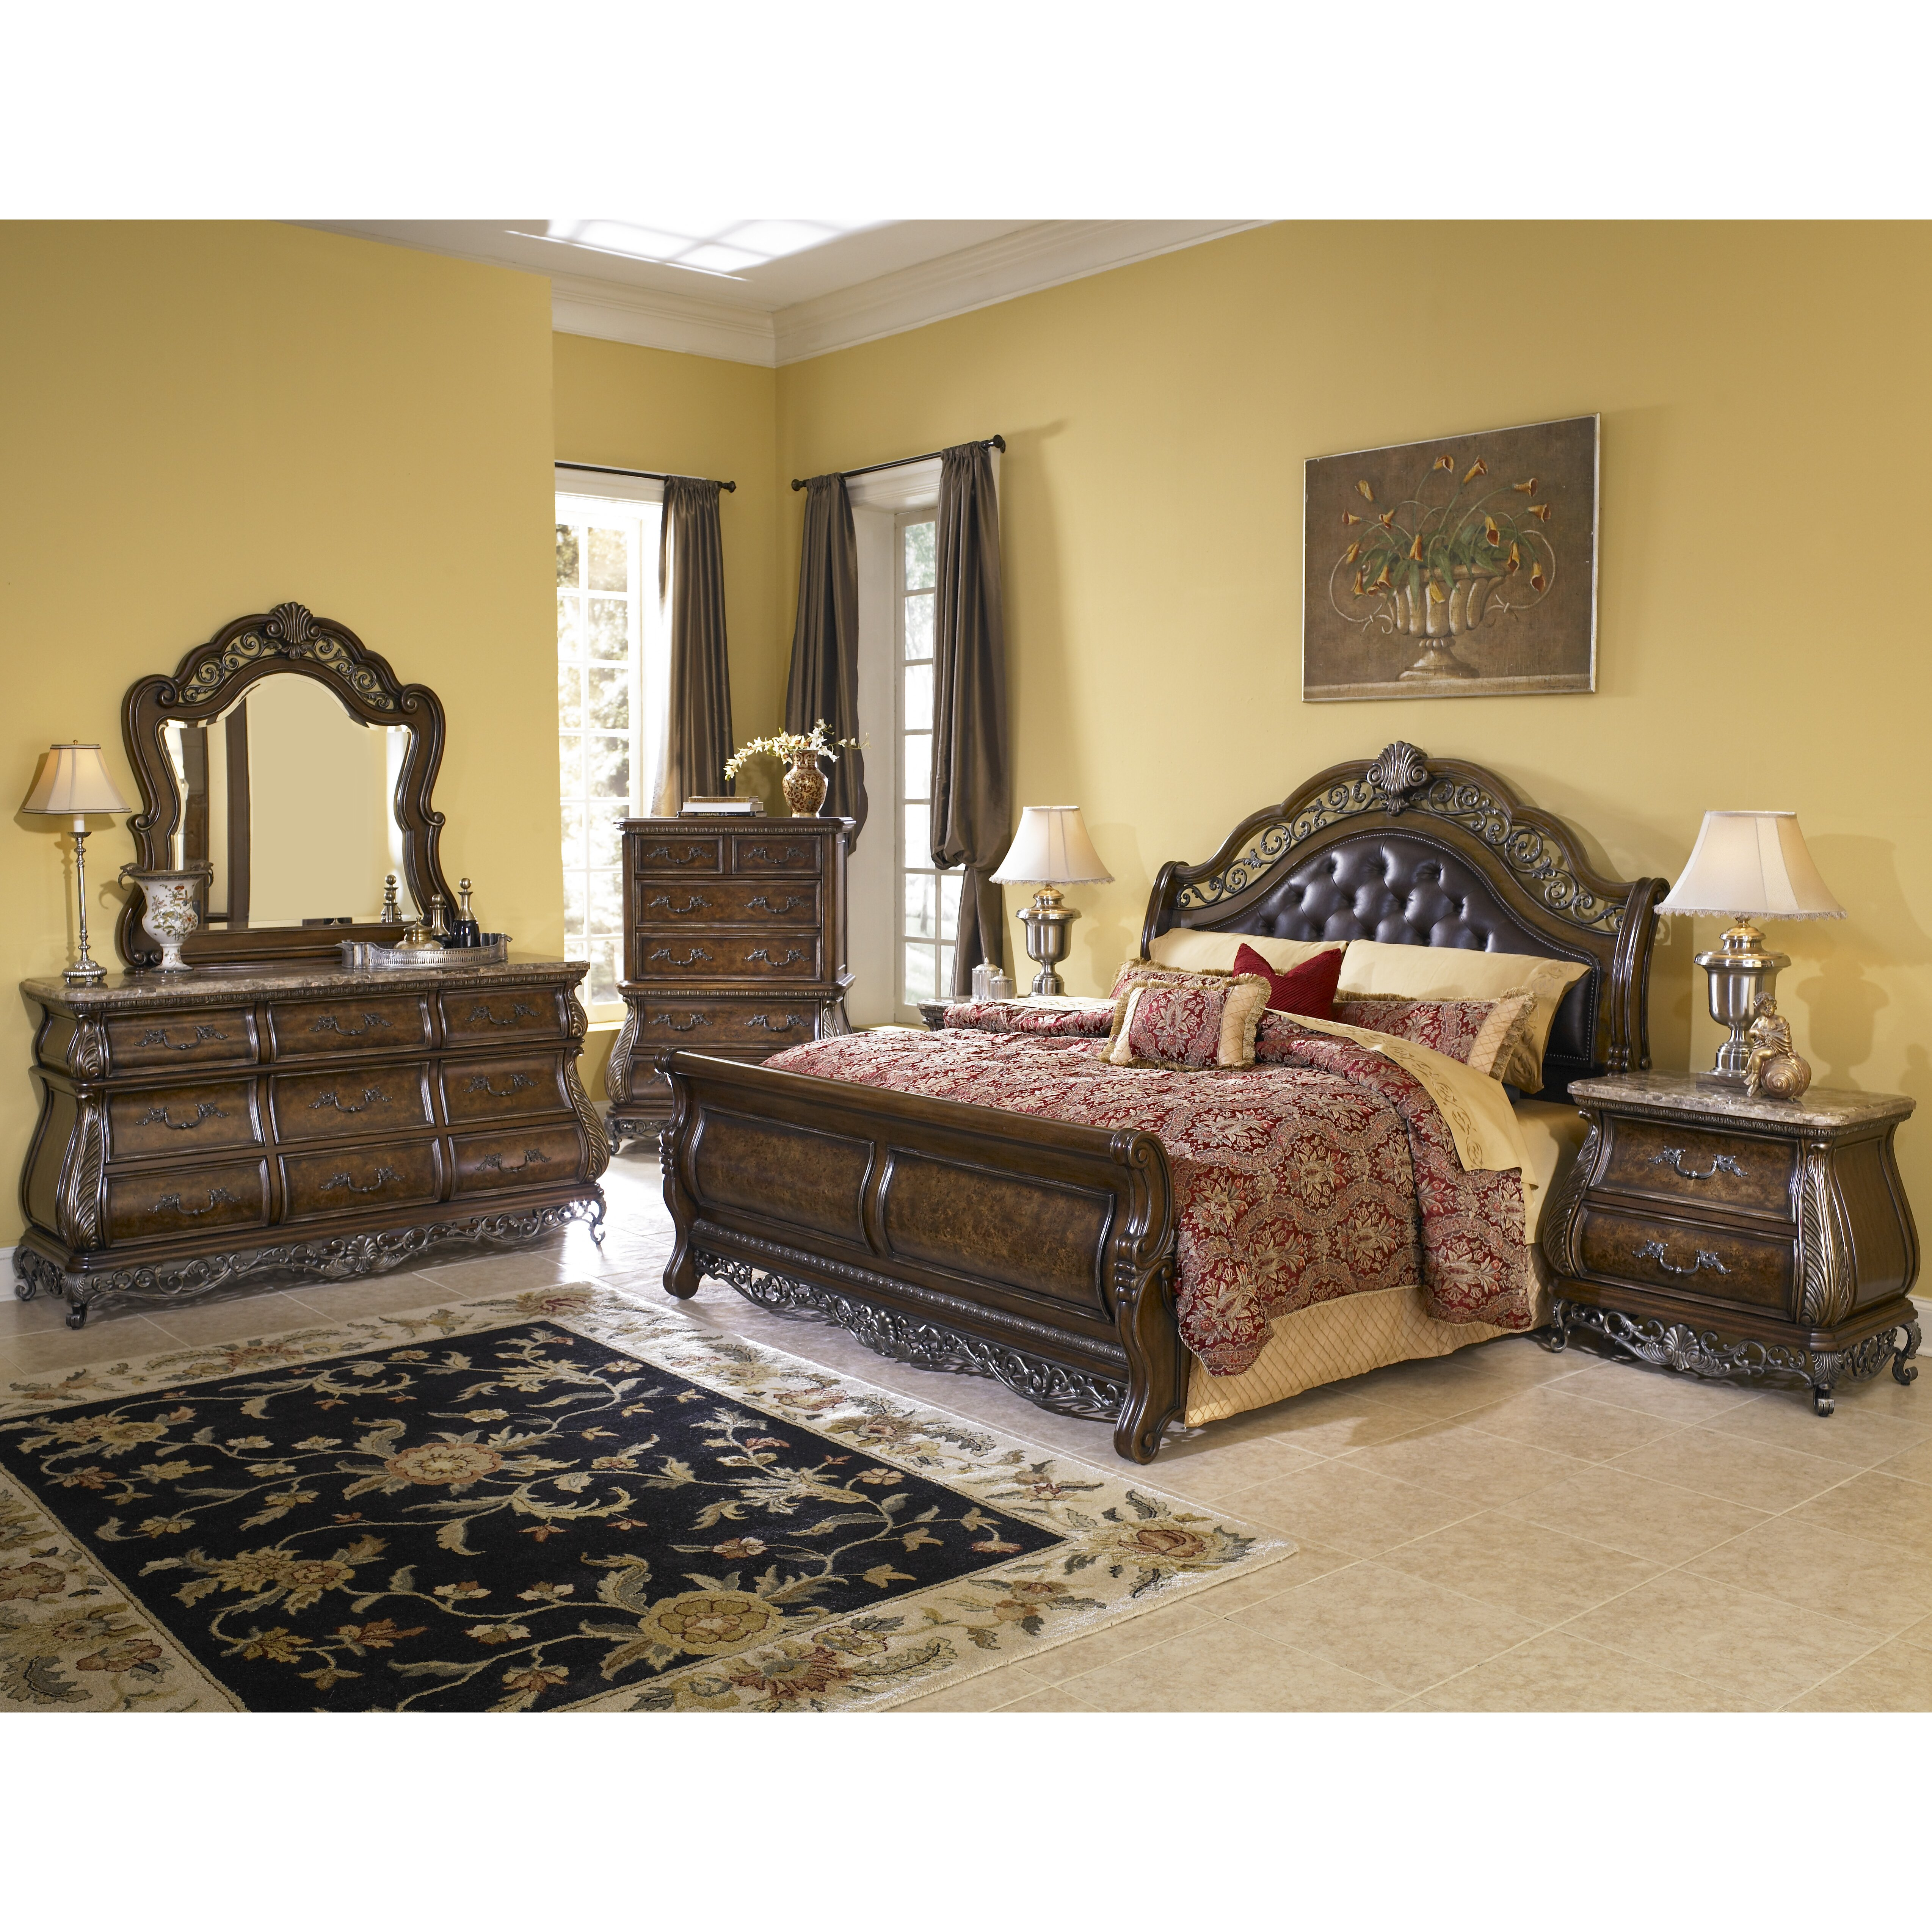 Pulaski Bedroom Furniture Pulaski Birkhaven Sleigh Customizable Bedroom Set Reviews Wayfair